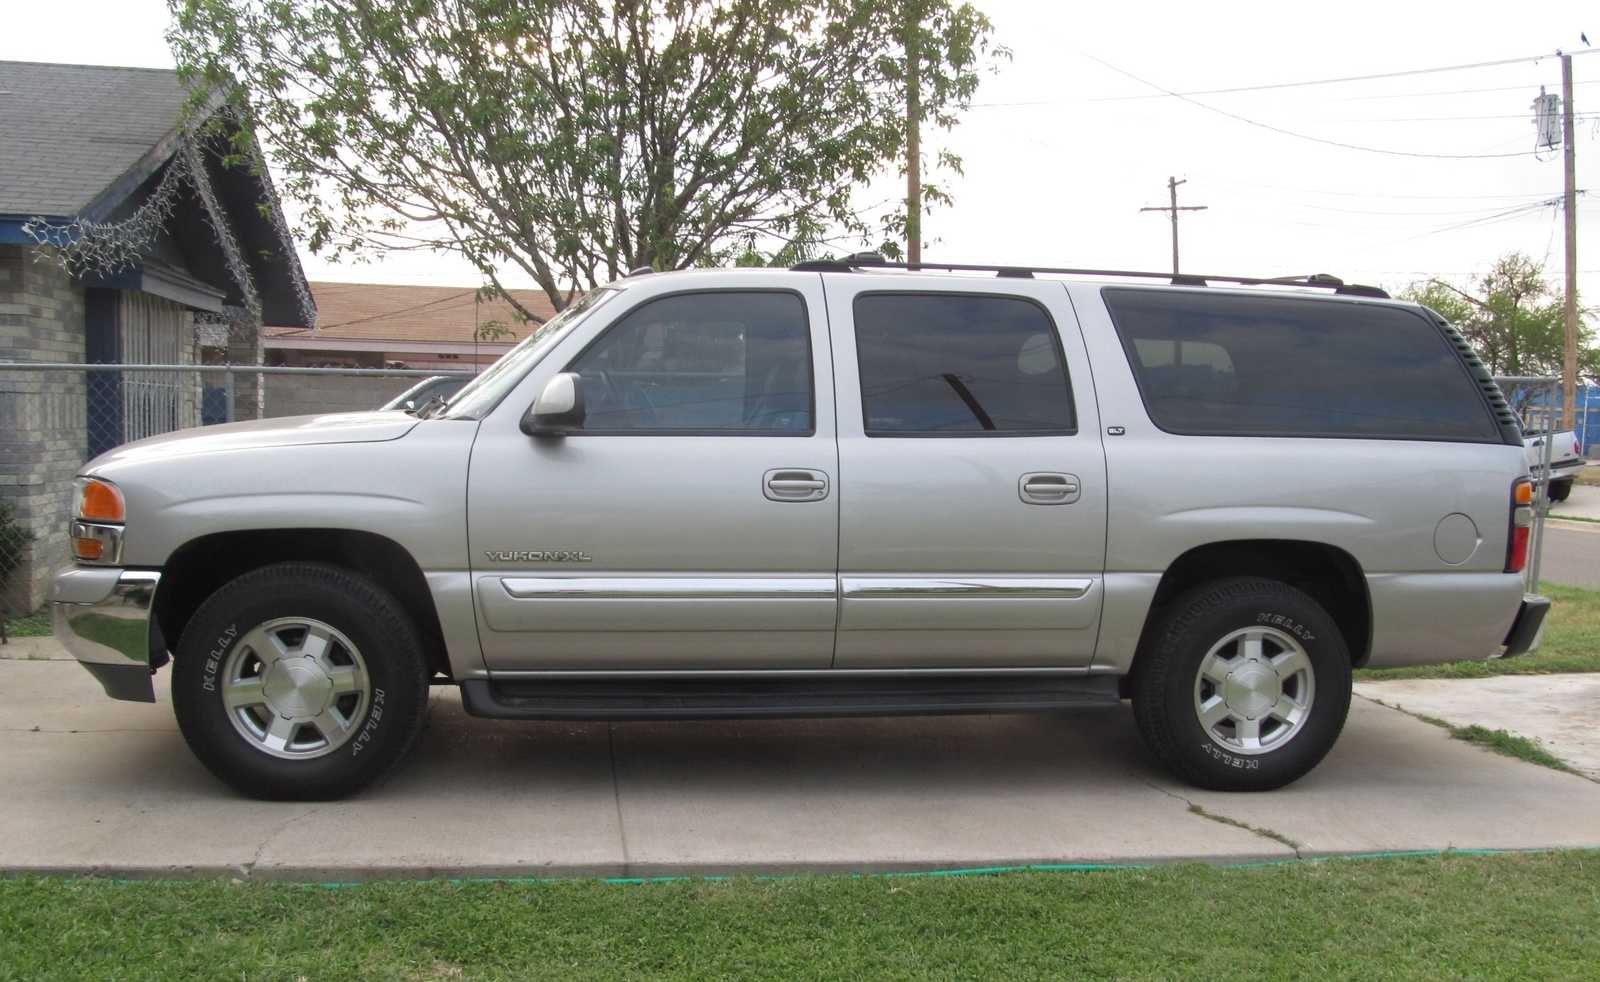 service manual how to remove 2004 gmc yukon xl 1500 door. Black Bedroom Furniture Sets. Home Design Ideas